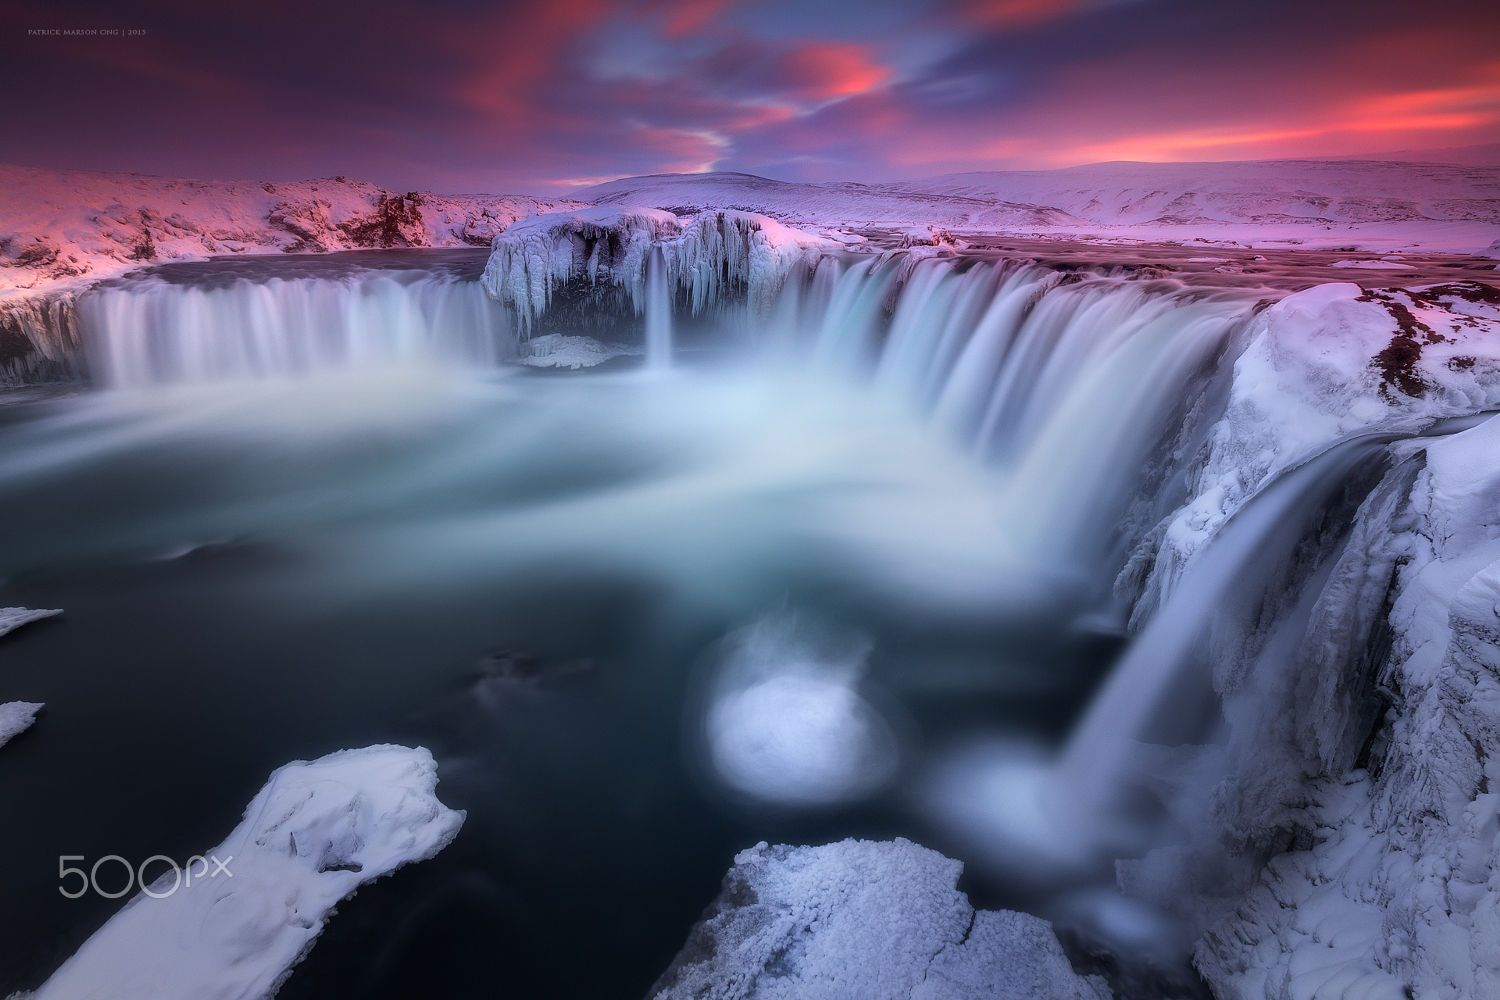 The Waterfall Kingdom of Godafoss, Iceland by Patrick Marson Ong on 500px